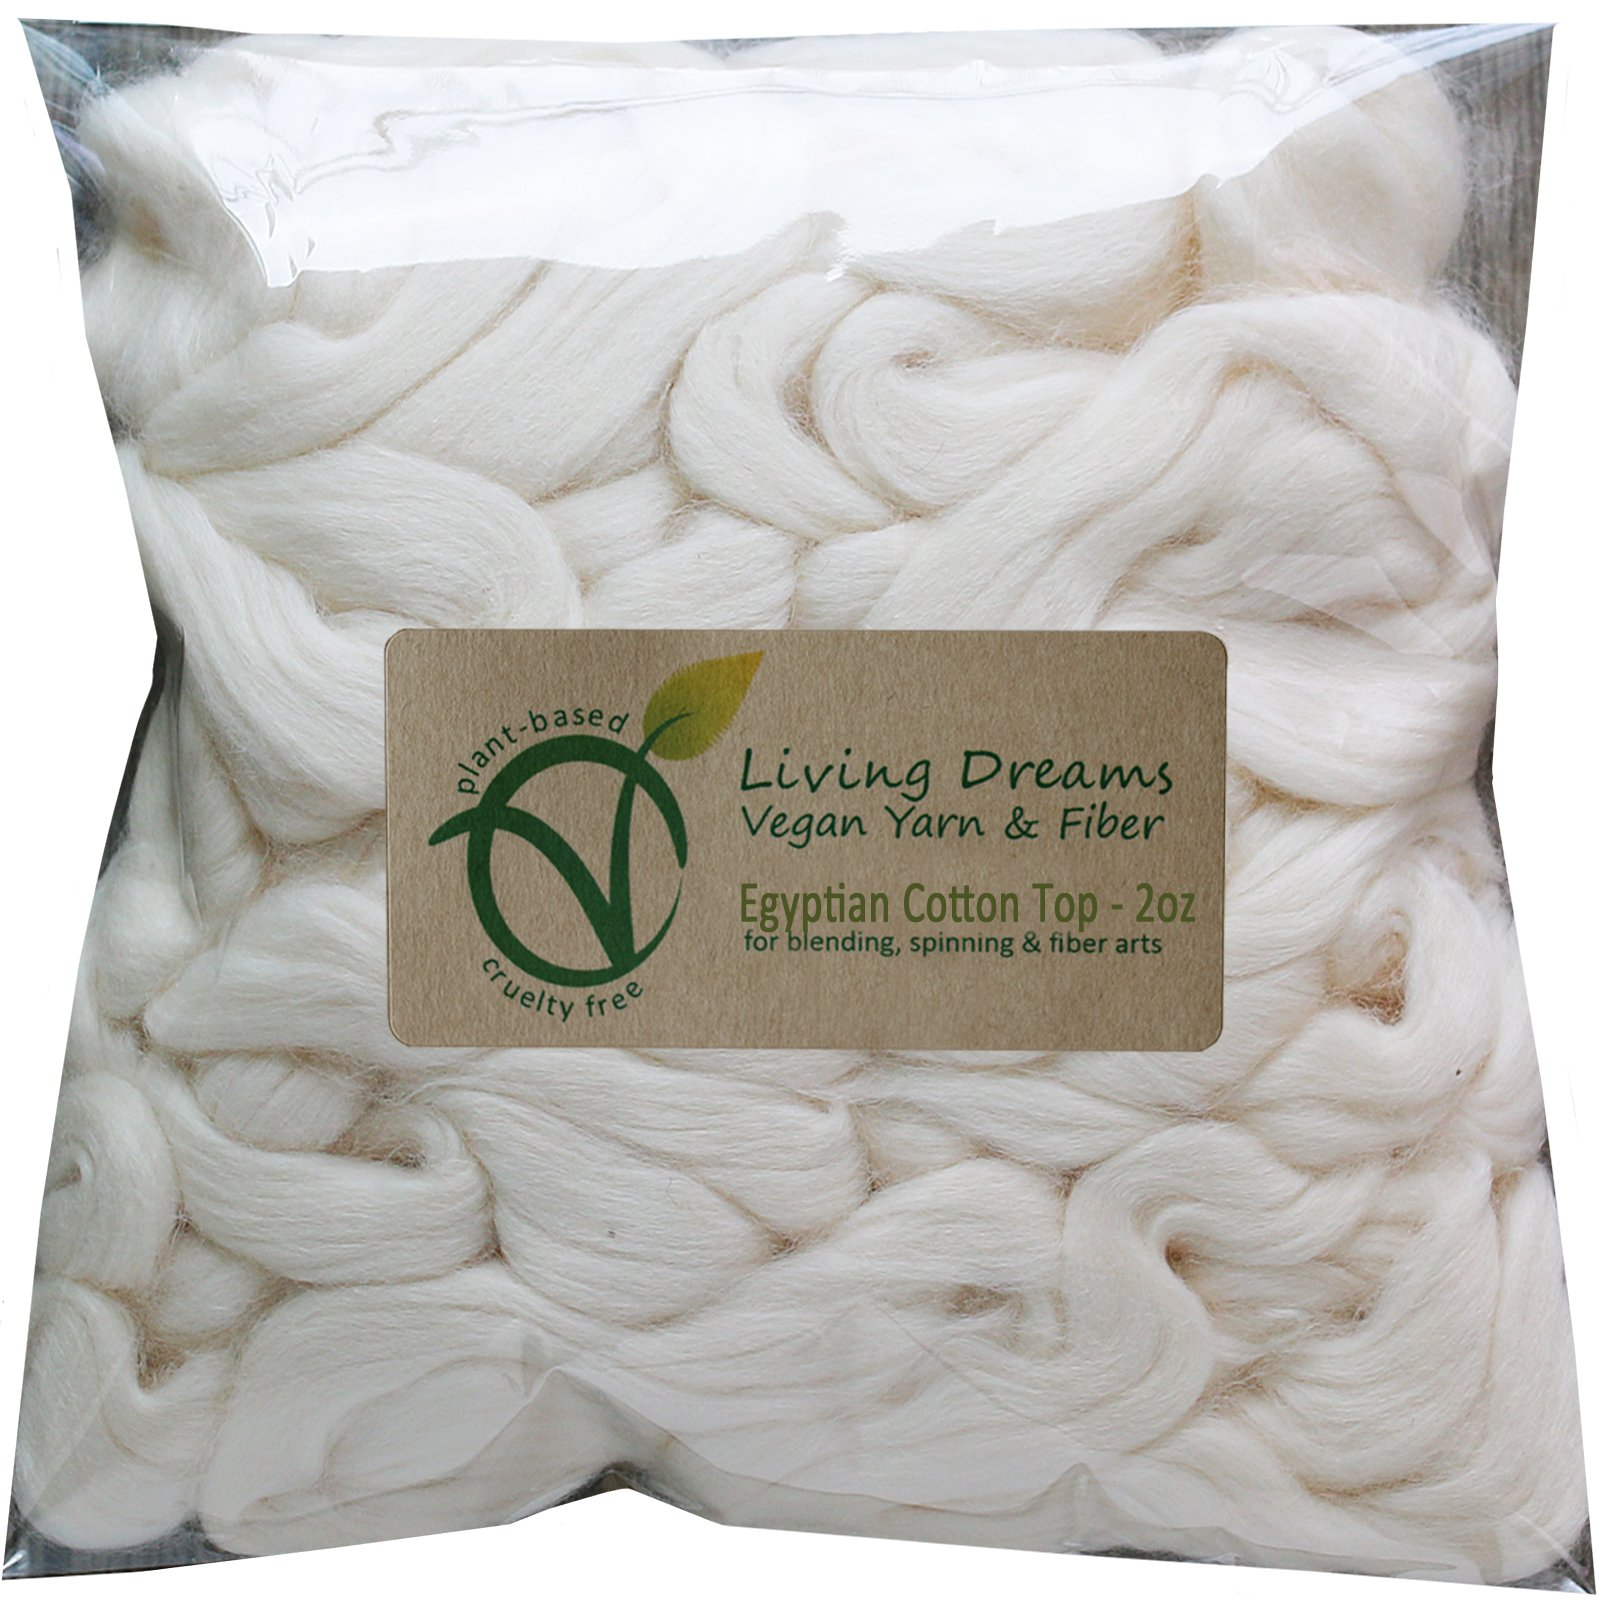 Egyptian Cotton Fiber for Spinning Blending Dyeing. Soft White Vegan Combed Top